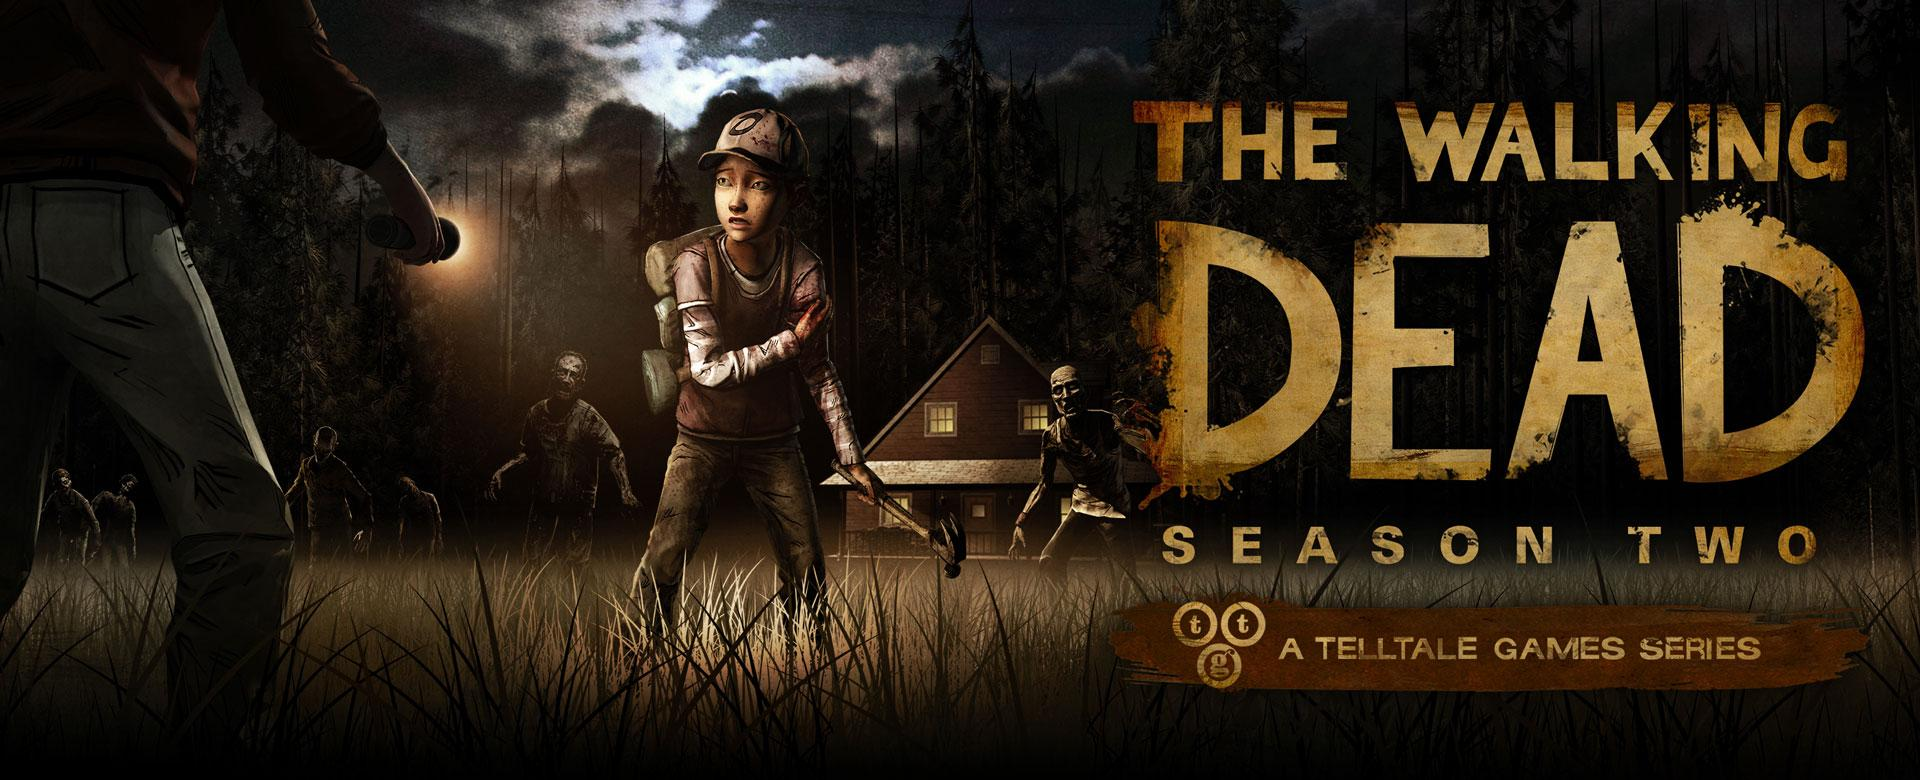 Review - The Walking Dead: Season 2